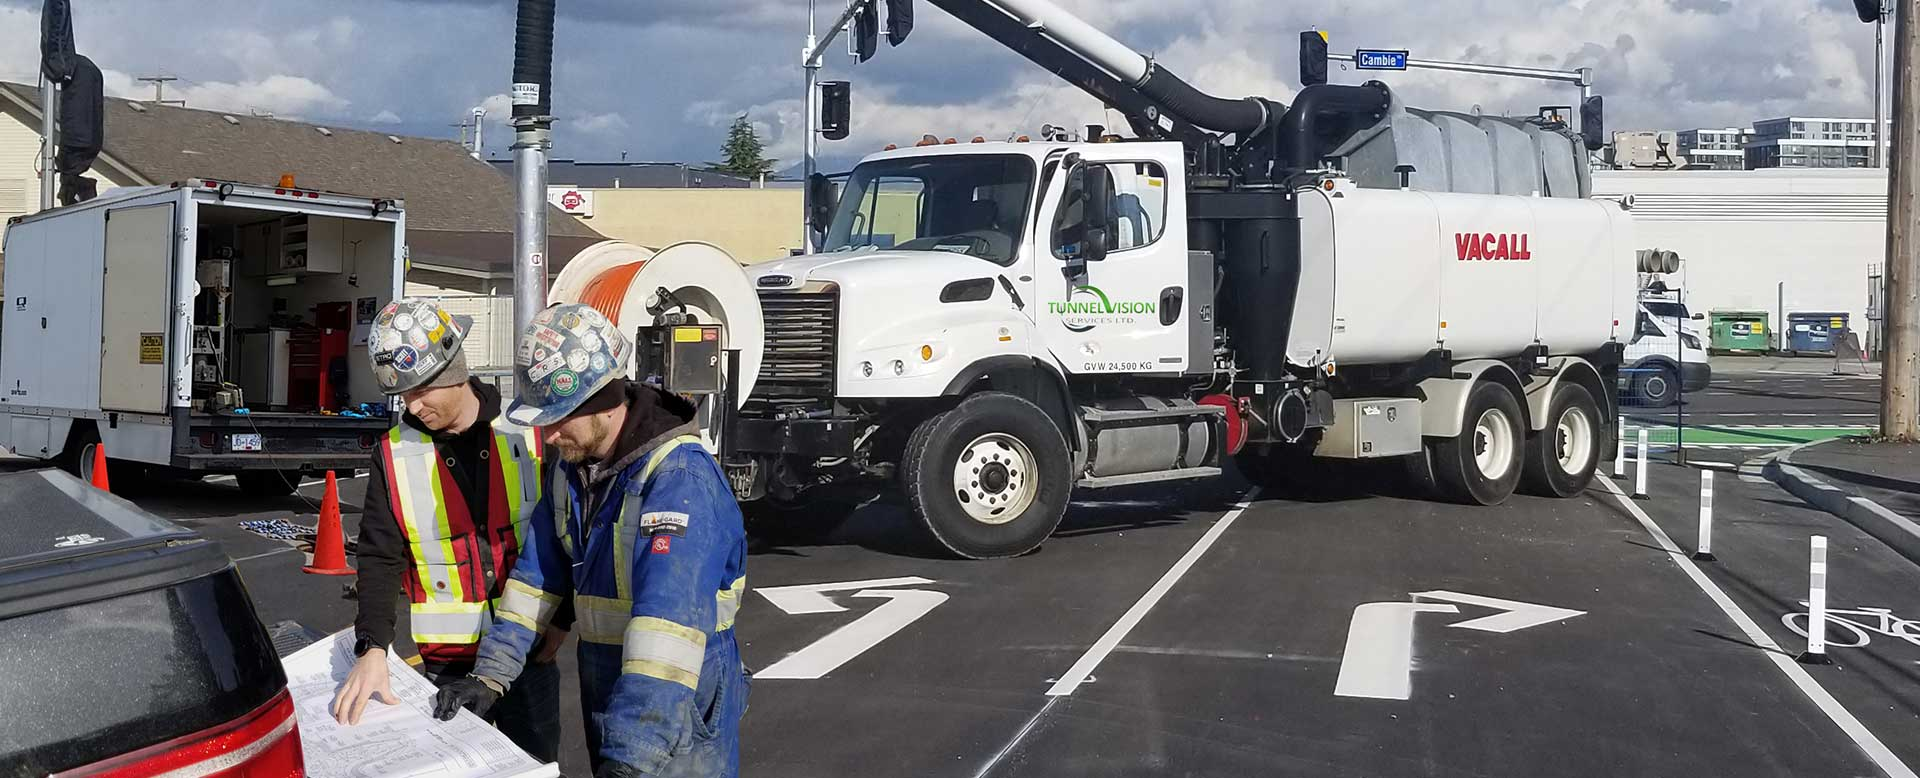 Langley City CCTV Pipe Inspection, Hydro Excavation and Hydro Excavation Company